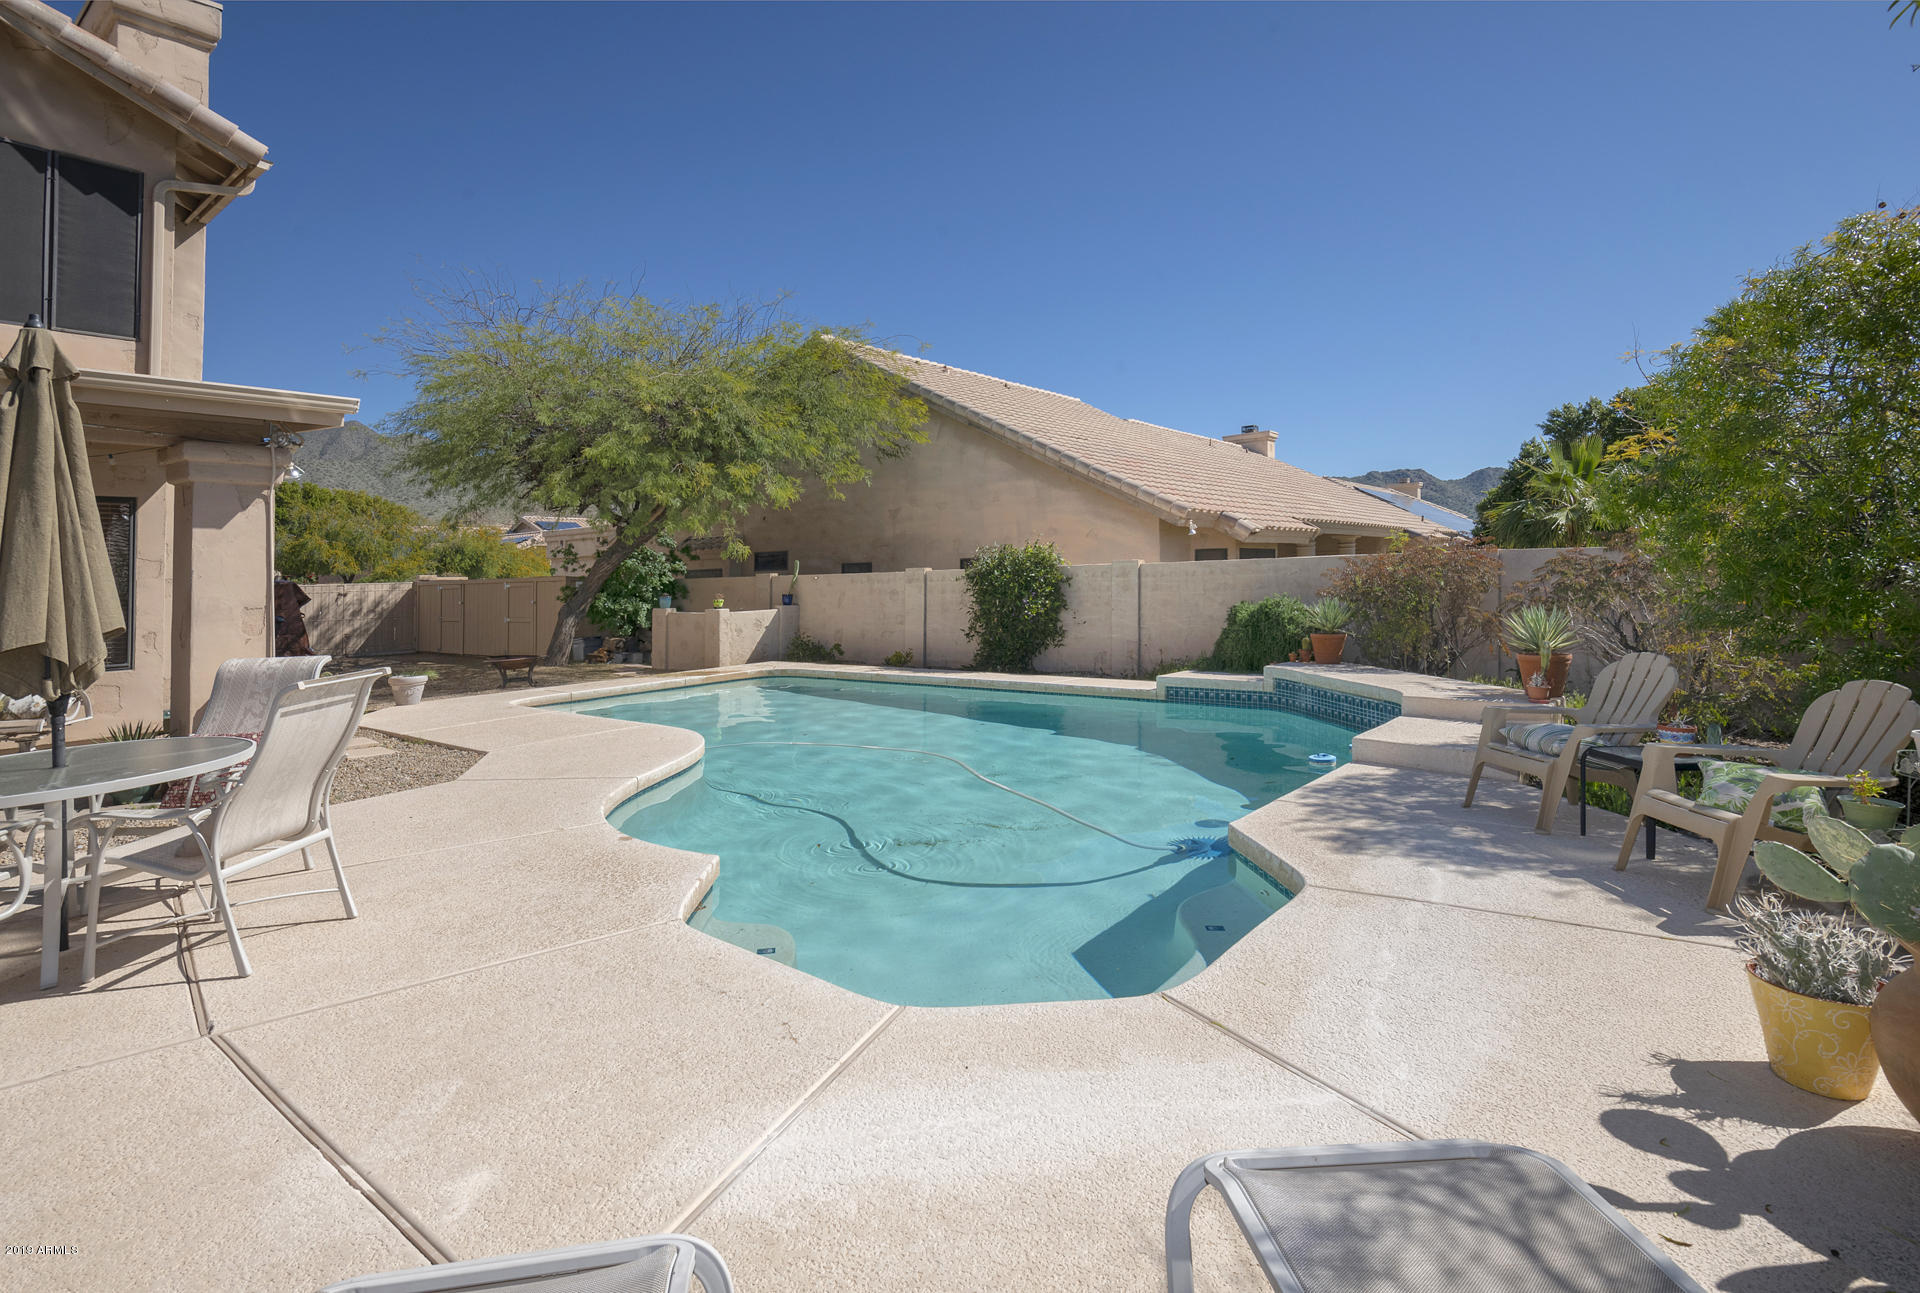 MLS 5962919 12743 E SUNNYSIDE Drive, Scottsdale, AZ 85259 Scottsdale AZ Private Pool